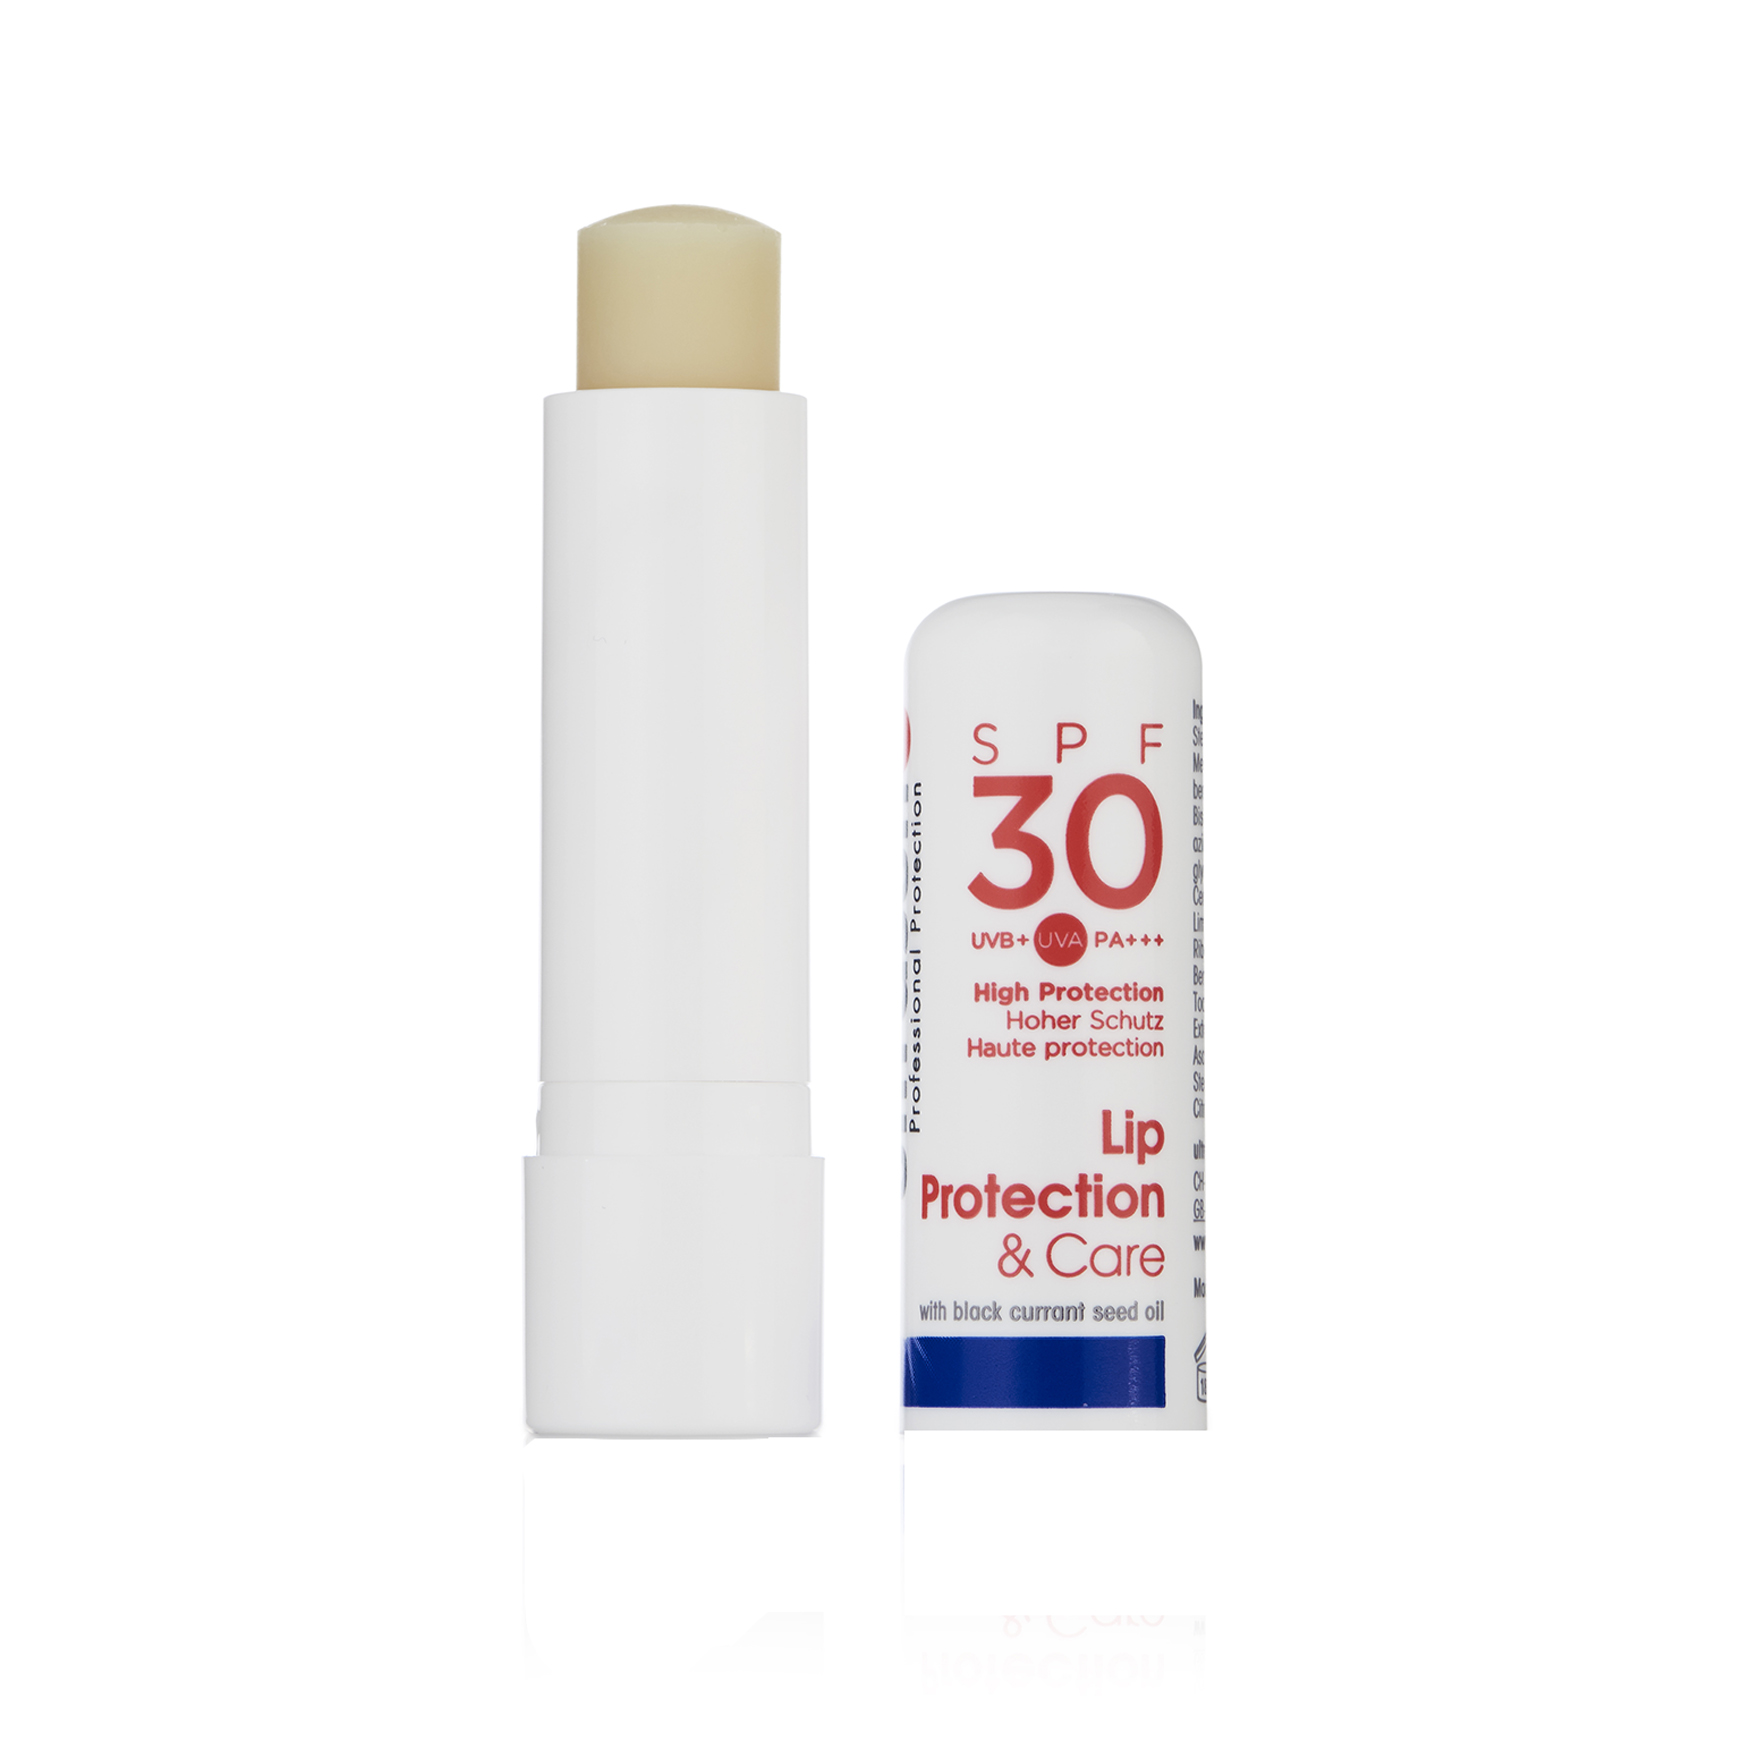 Lip Protection SPF30, , large